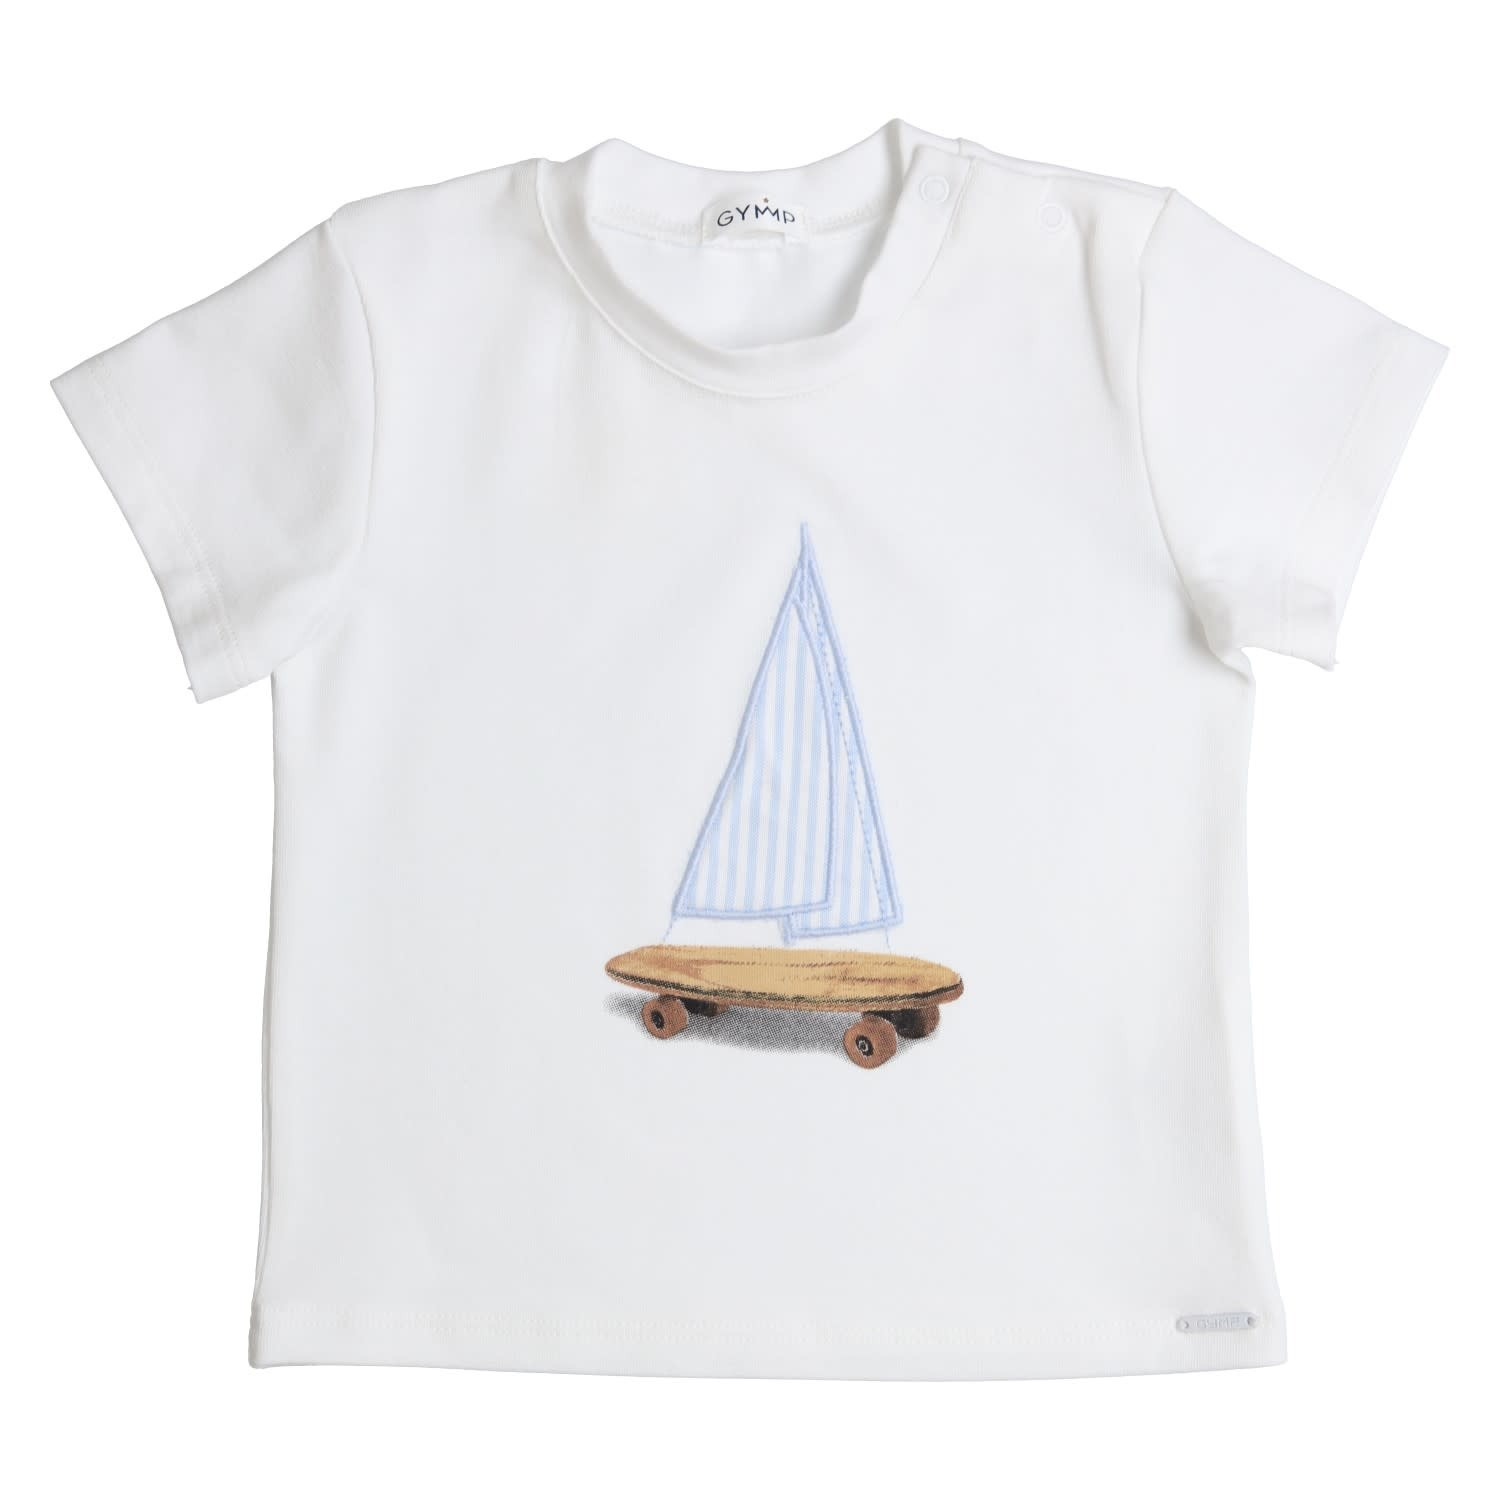 Gymp Tee White Sailor Boat